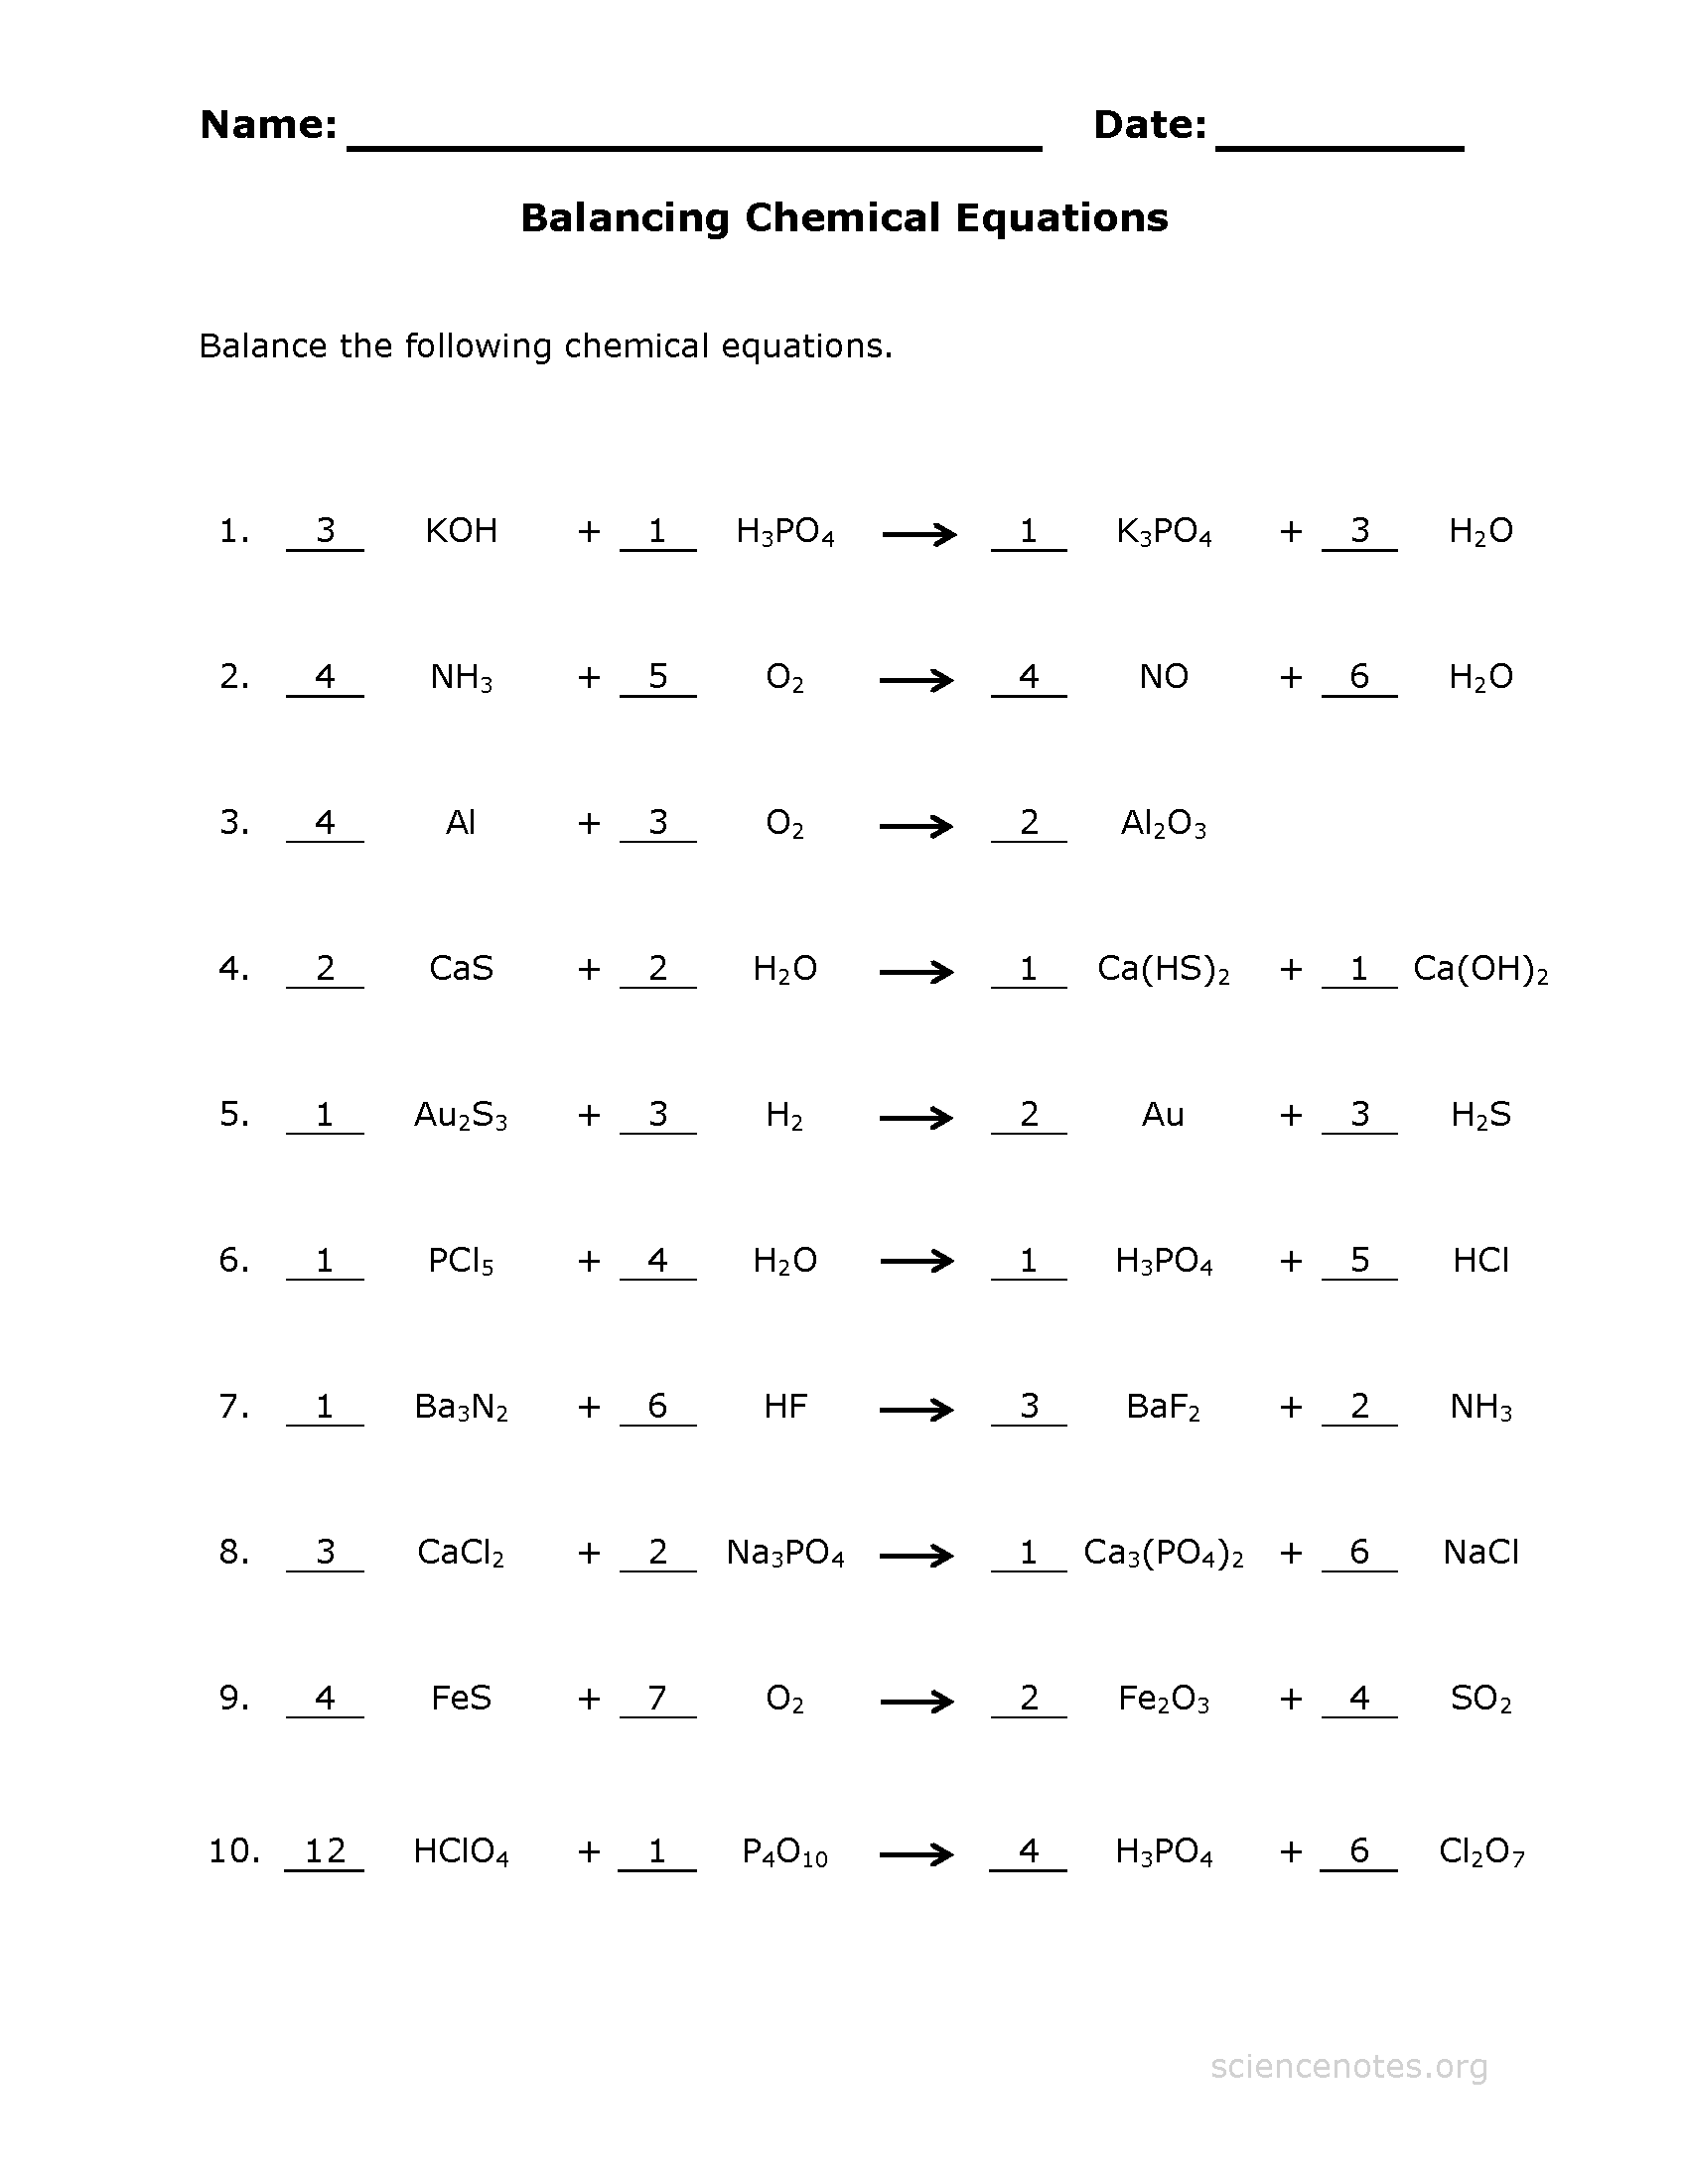 Balancing Equations Worksheet With Answer Key - Pichaglobal